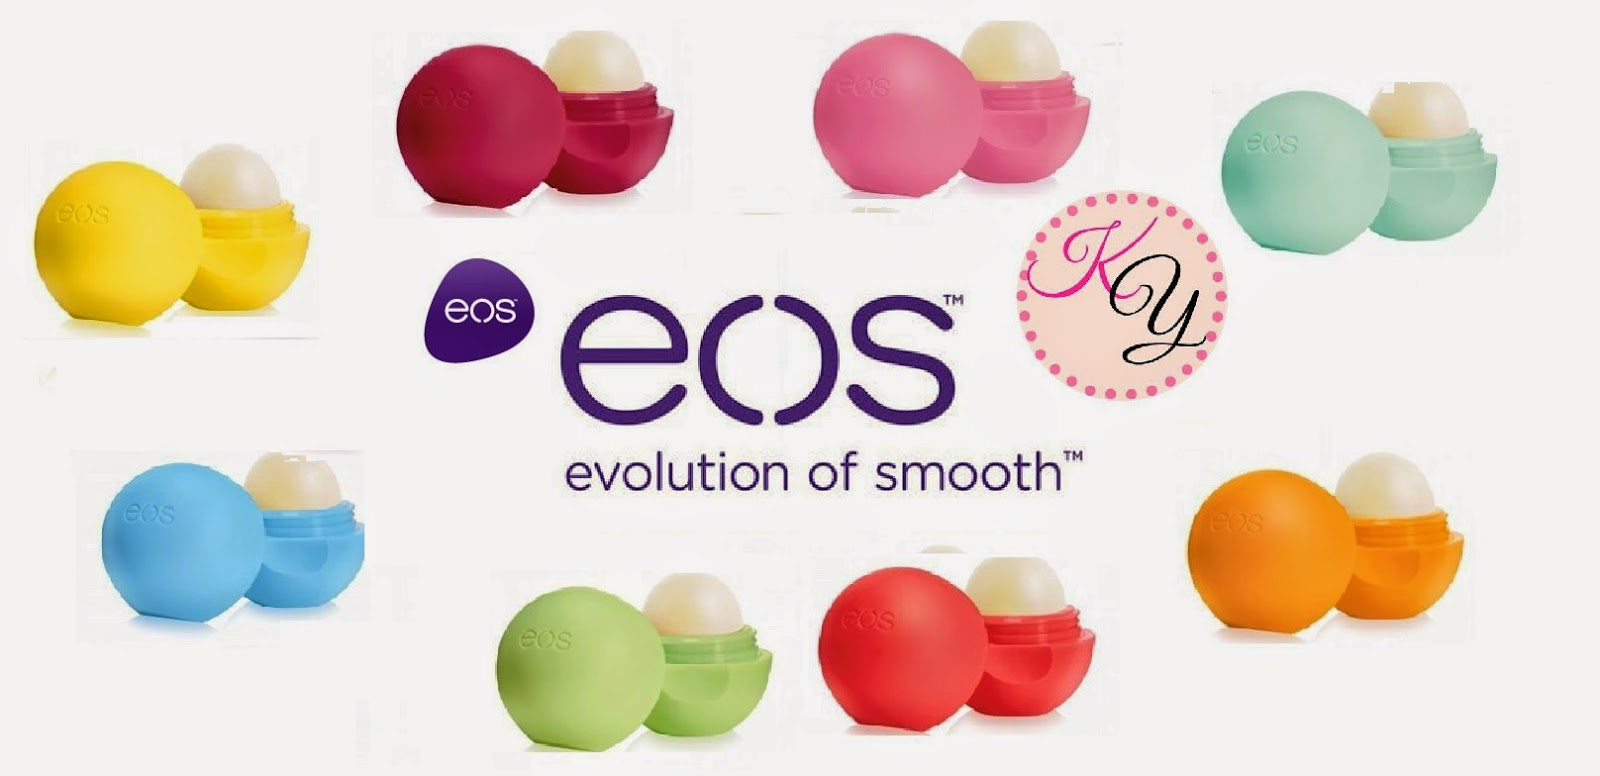 KaiyYeen: Review : EOS Sweet Mint Lip Balm (Evolution of ... Eos Evolution Of Smooth Lip Balms